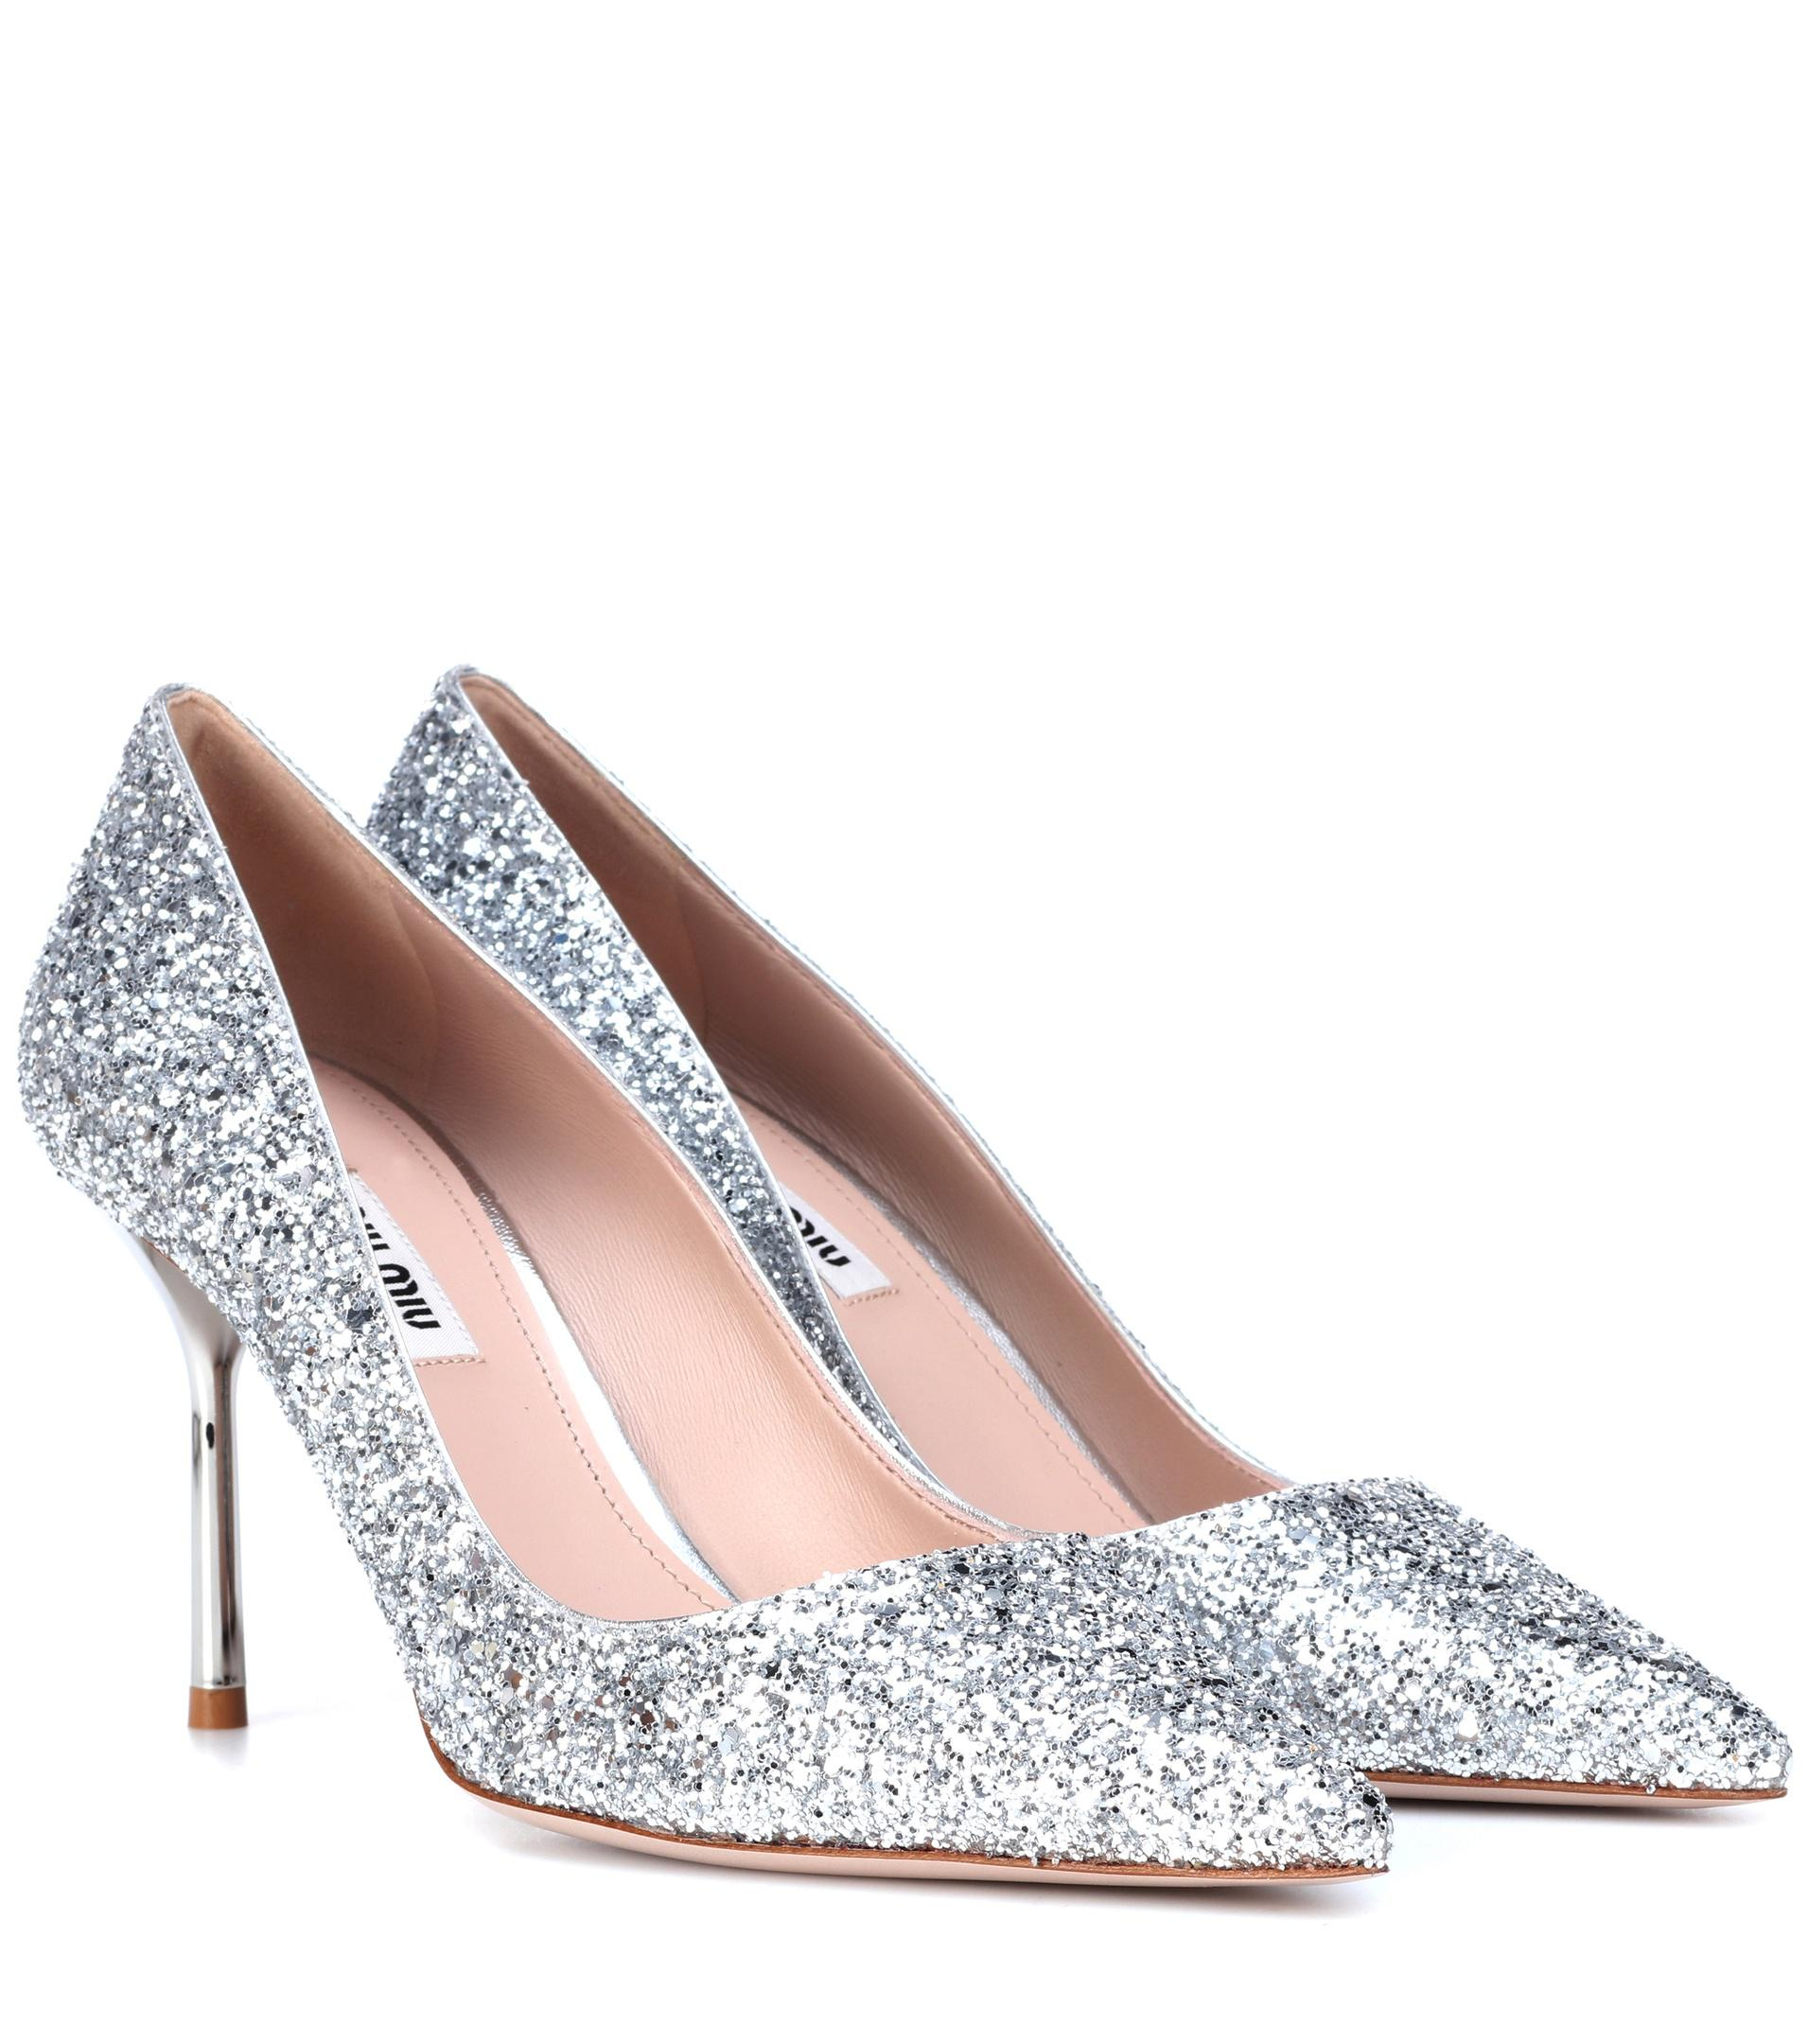 82b336094f8 Lyst - Miu Miu Glitter Pumps in Metallic